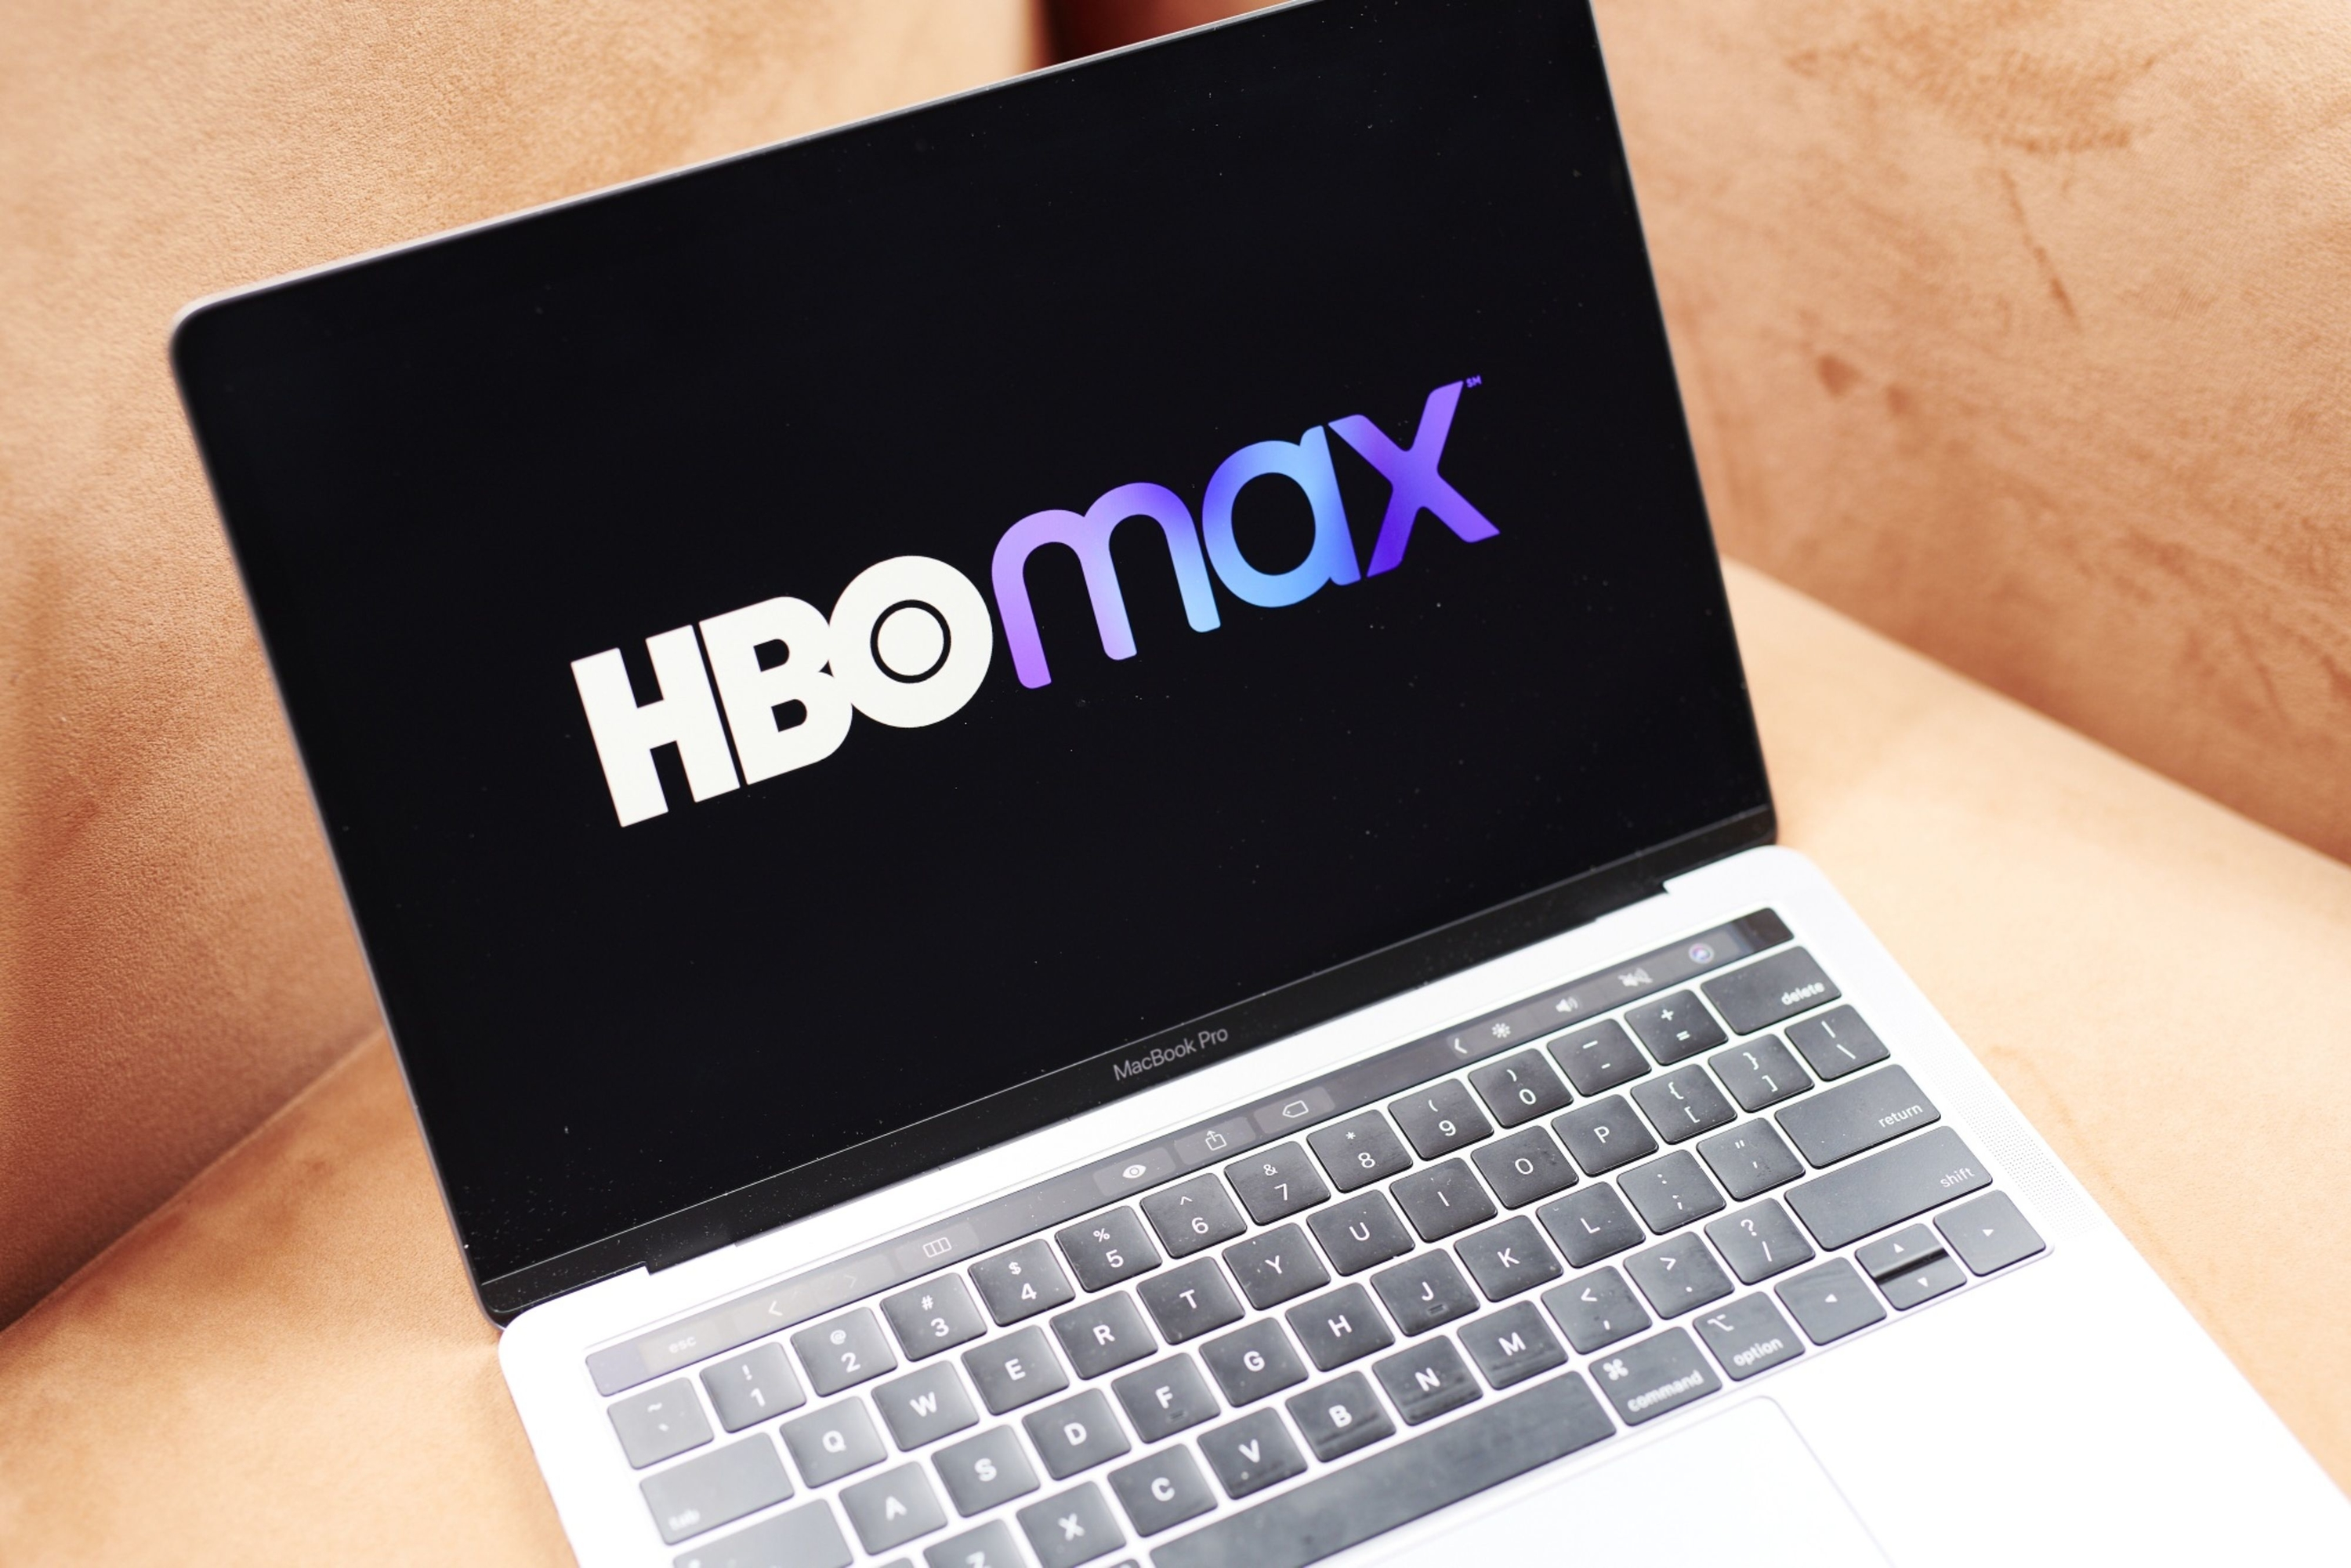 AT&T raises HBO Max view to up to 150 million subscribers